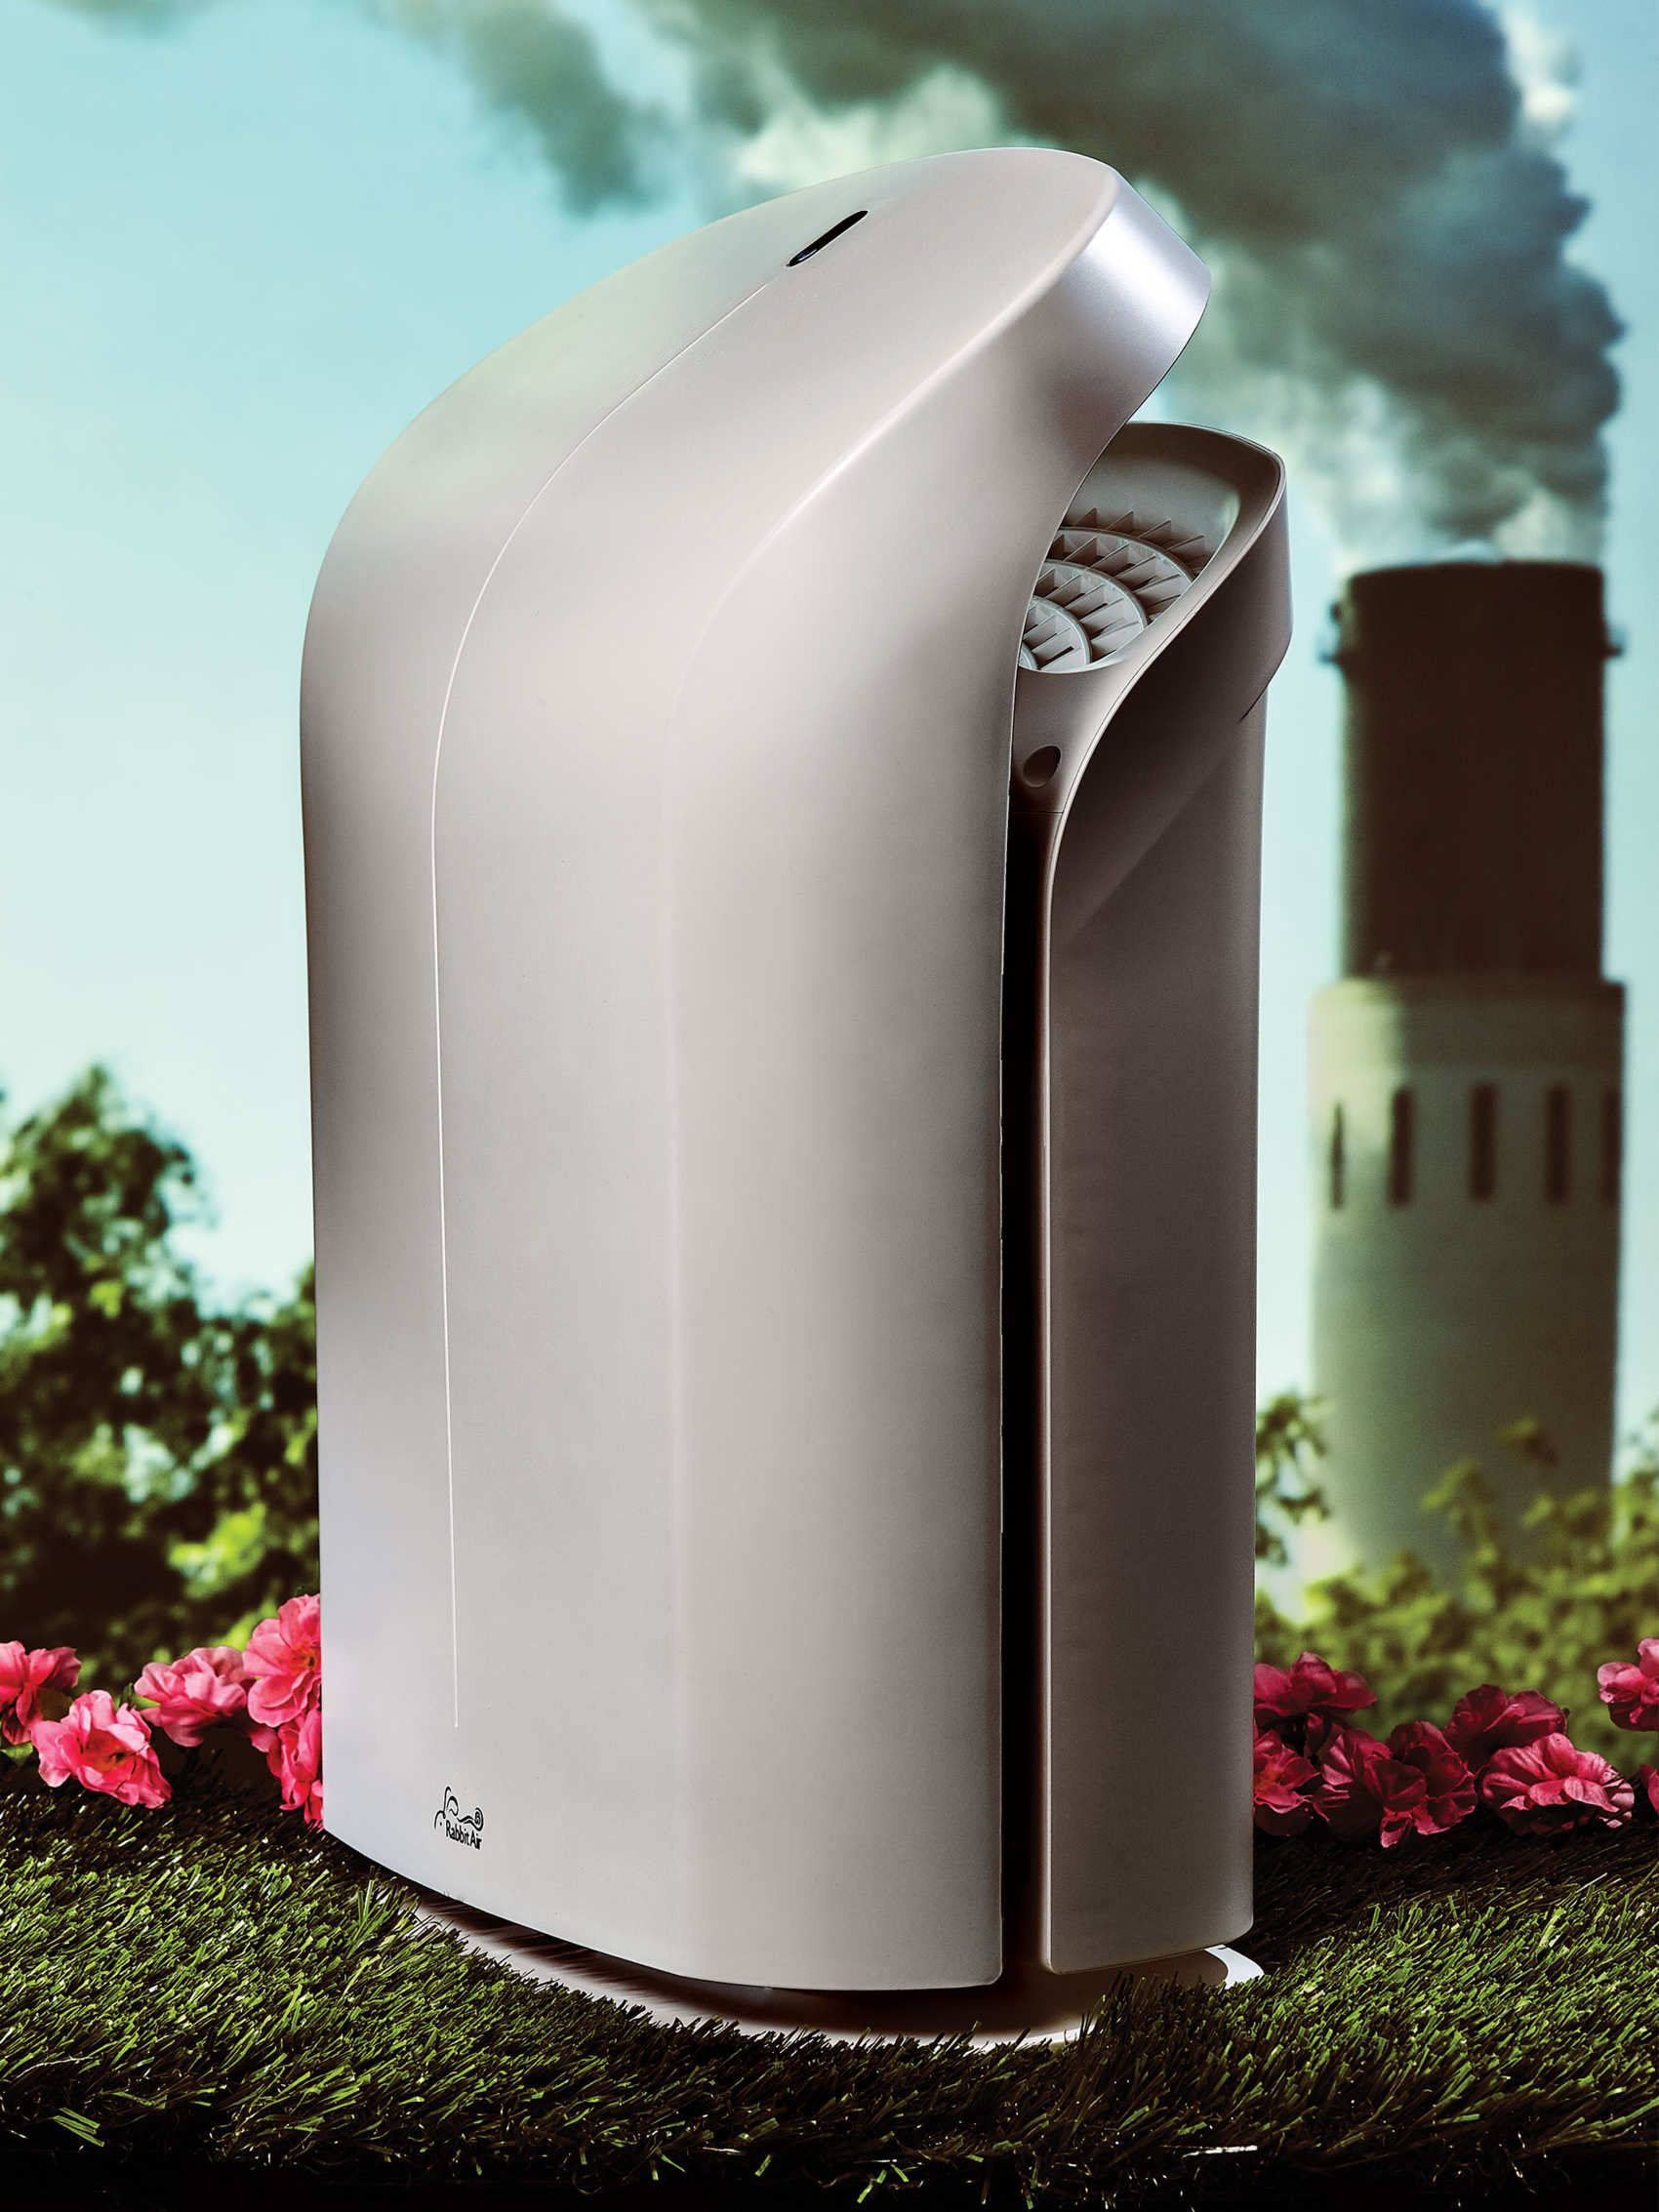 The Best Air Purifiers, According to Doctors and Air